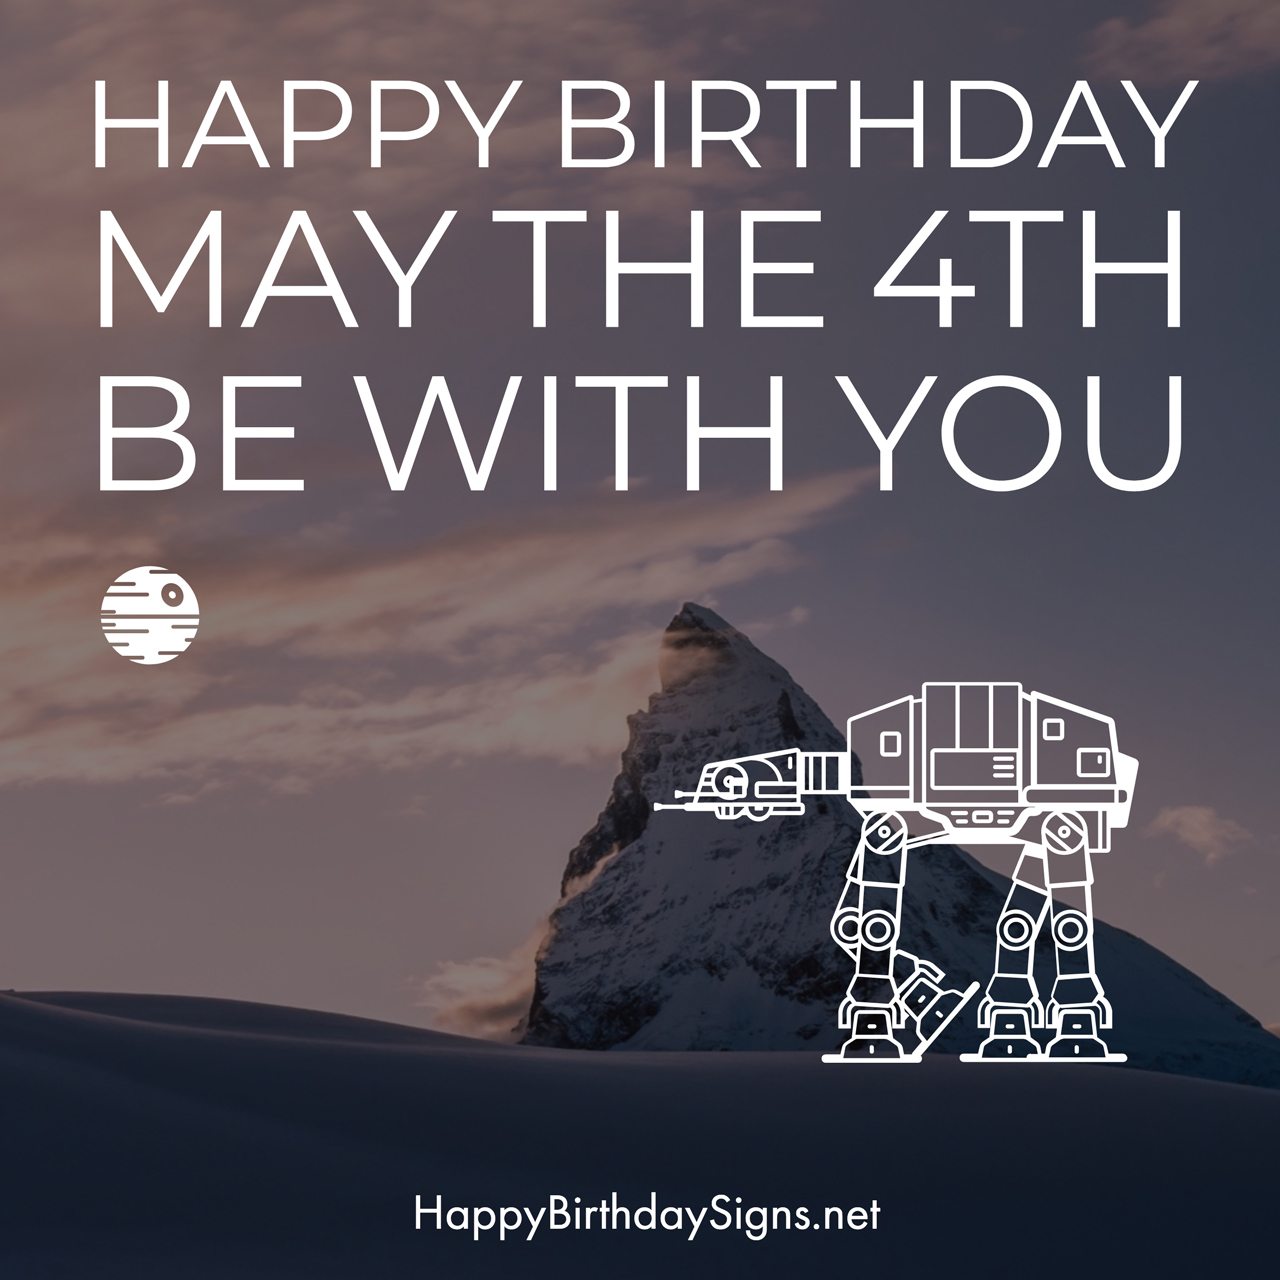 May The 4th Be With You Birthday: May The 4th Happy Birthday